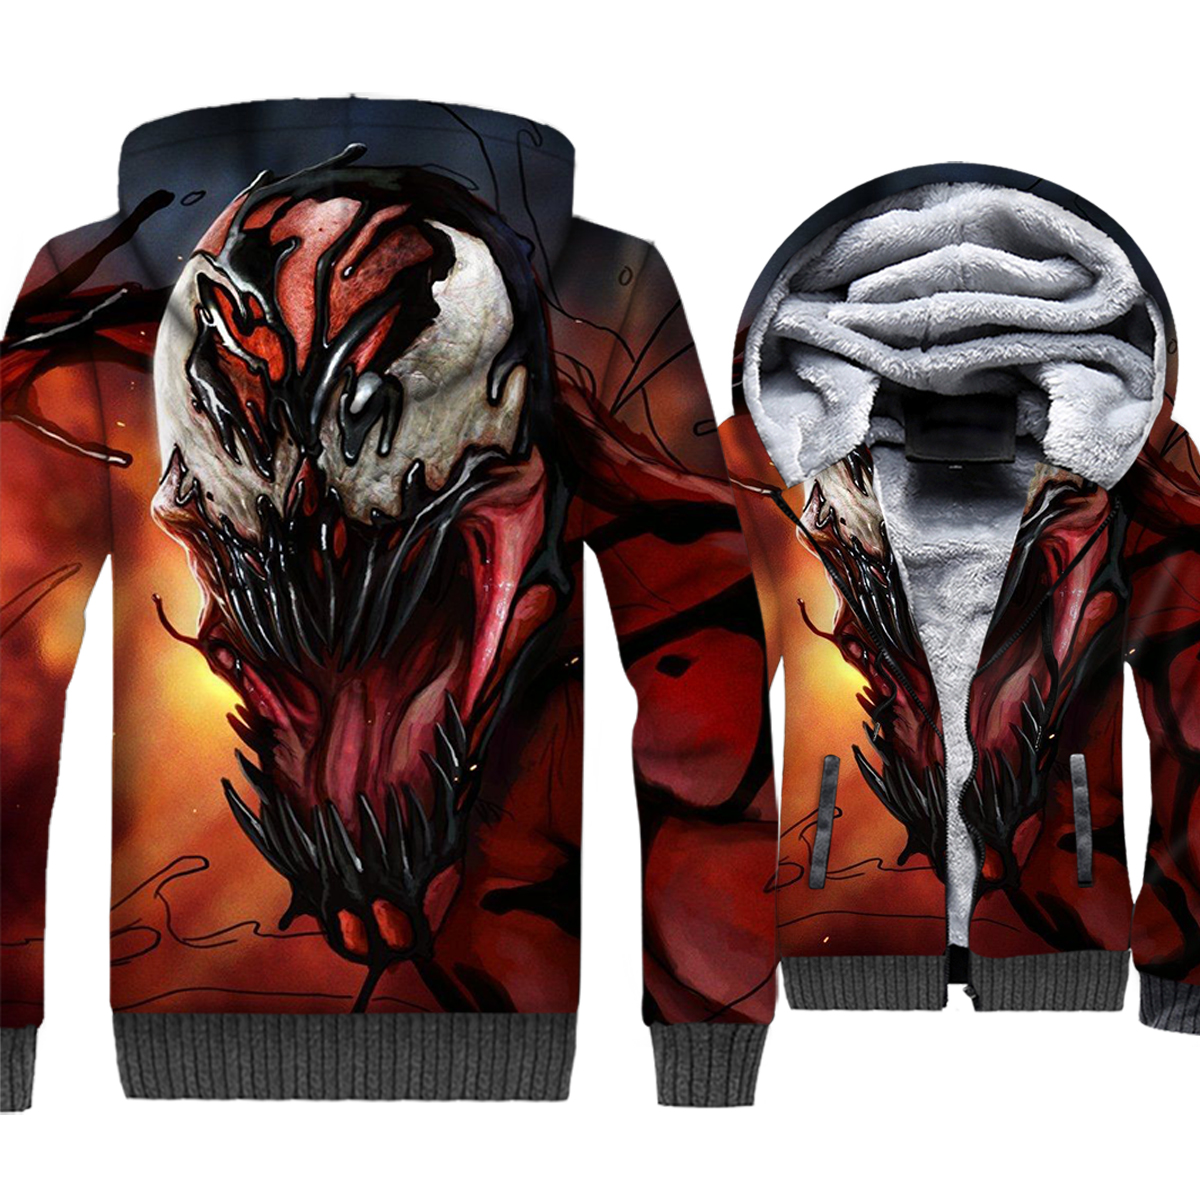 Spiderman Venom clothes men harajuku hooded hoodies hipster Superhero jackets coats 2019 3D printed sweatshirts plus size M-5XL